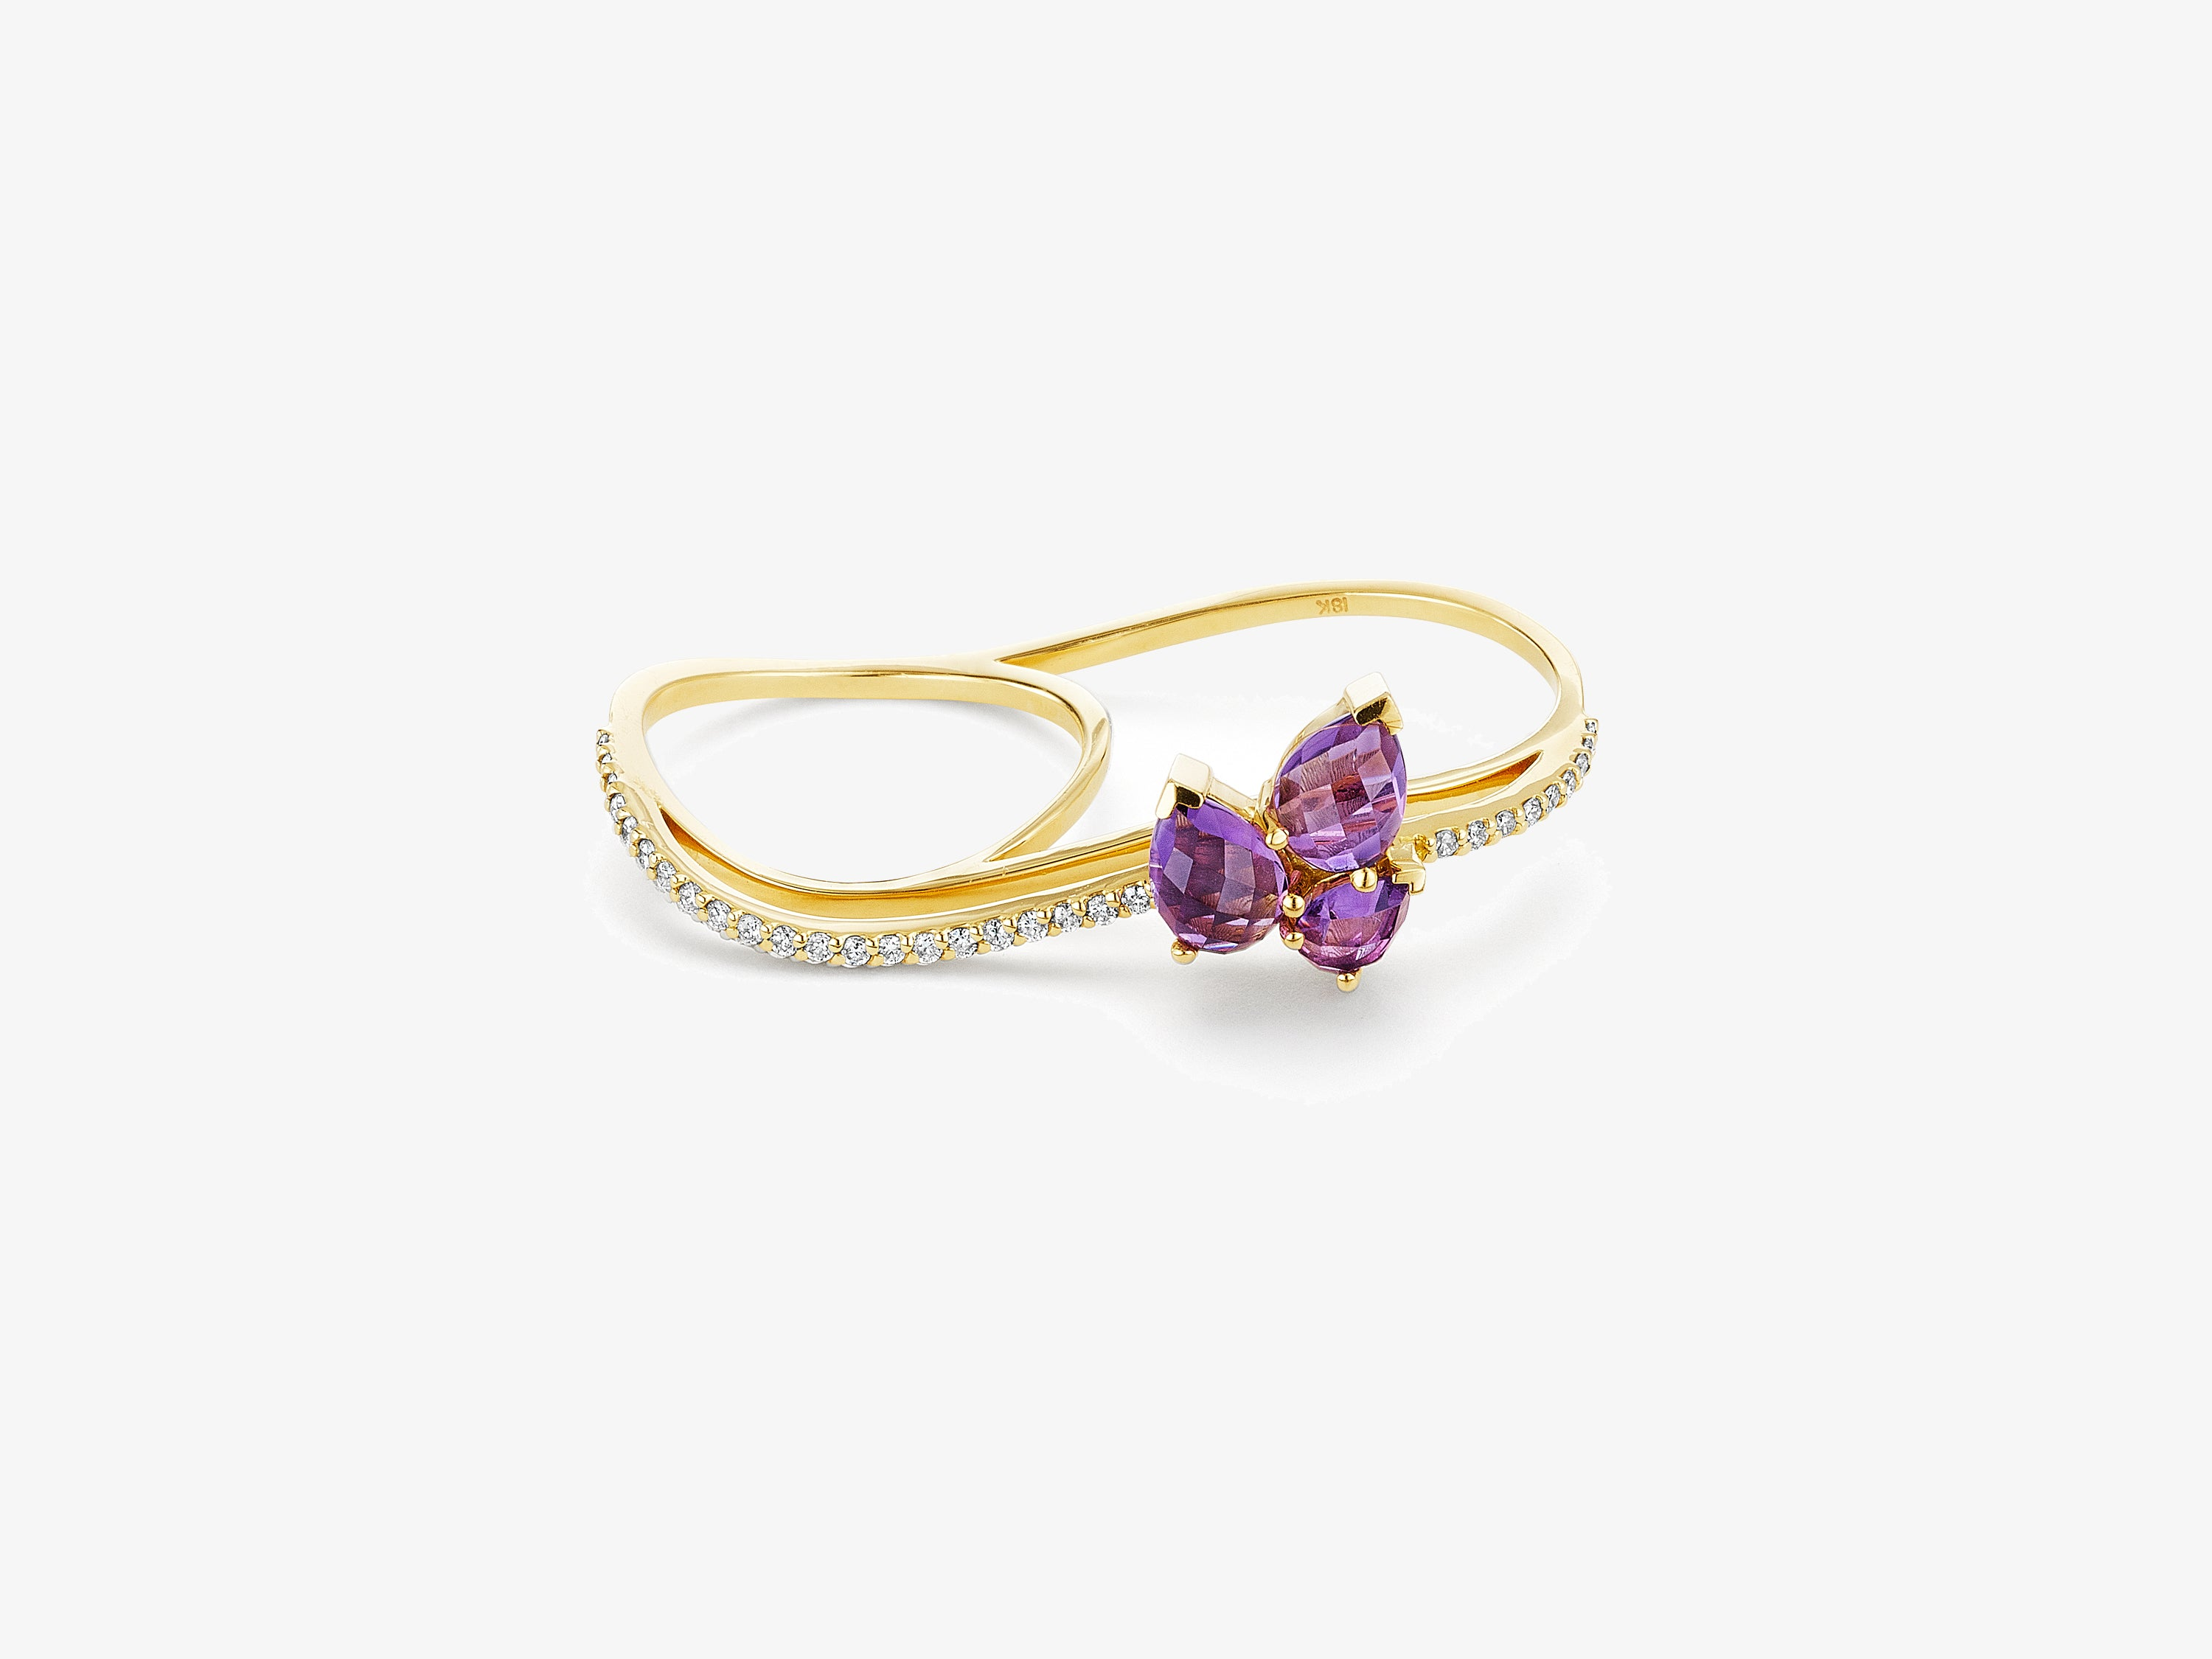 Three Dimensional Wavy Double Finger Ring with Full Diamond Pave and Pear Shaped Gemstone Cluster Detail